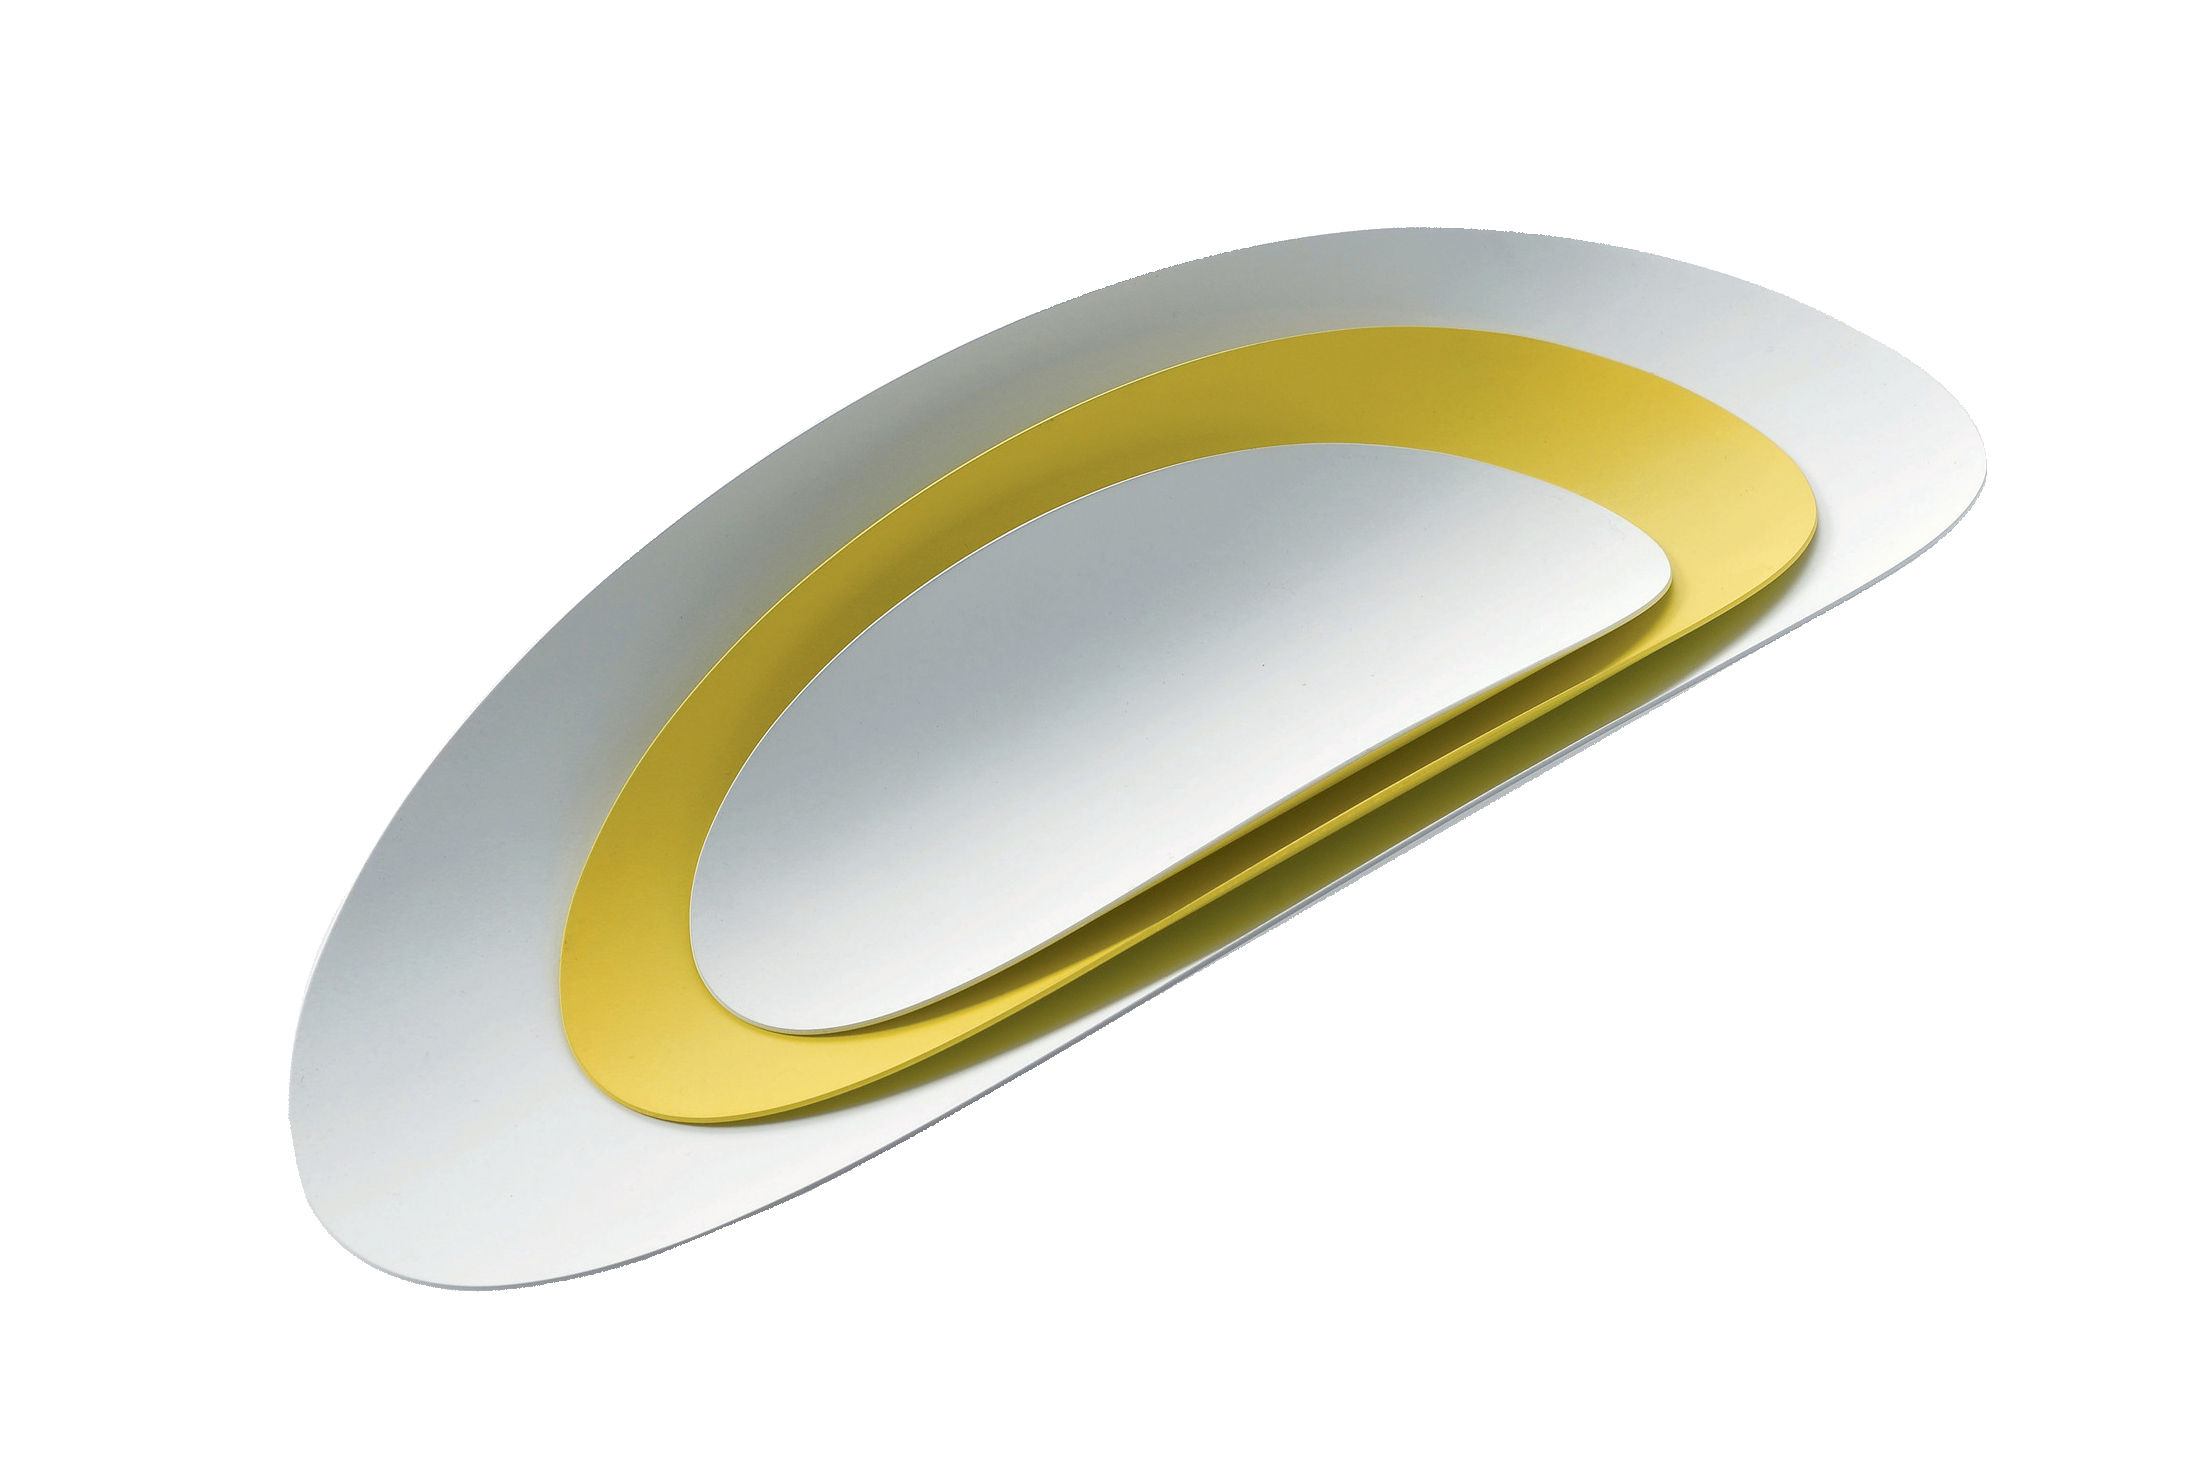 Tableware - Trays - Ellipse Set - 3 stackable trays by Alessi - White & yellow - Steel